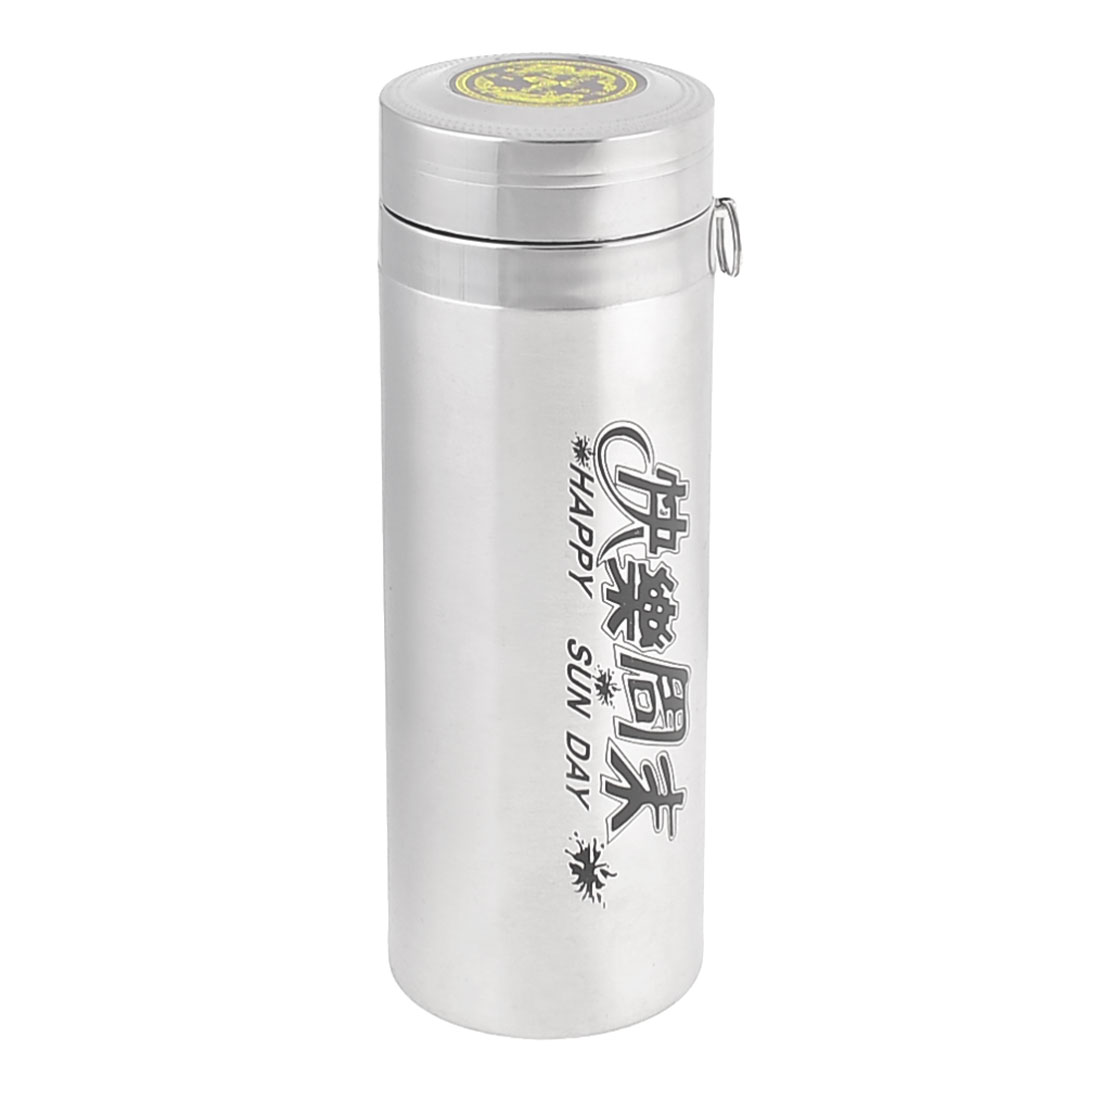 Camping Hiking Silver Tone Chinese Print Insulated Vacuum Bottle 300ml